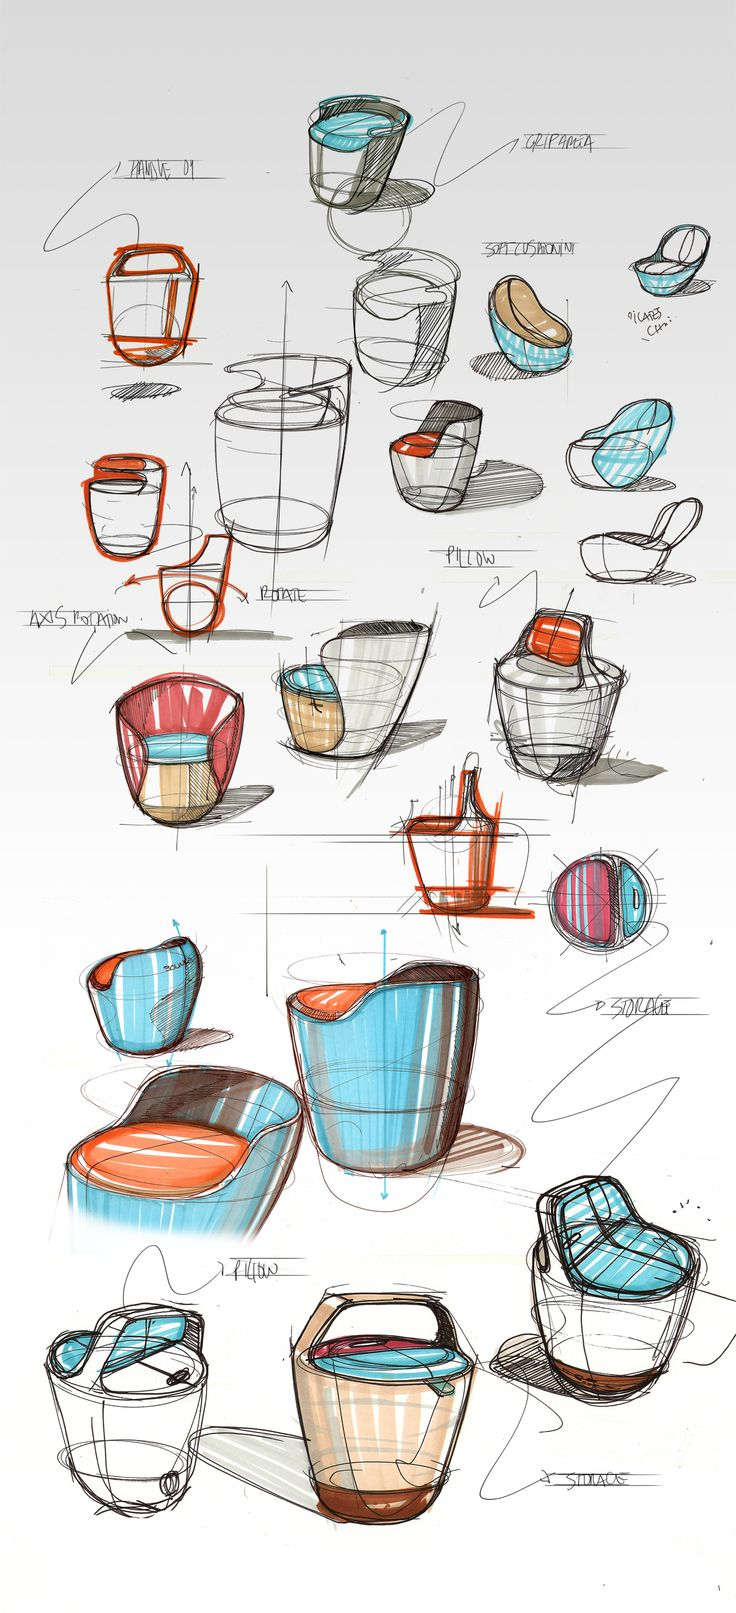 Industrial design sketches furniture - Modern Furniture Bounce Chair Design By Pedro Gomes